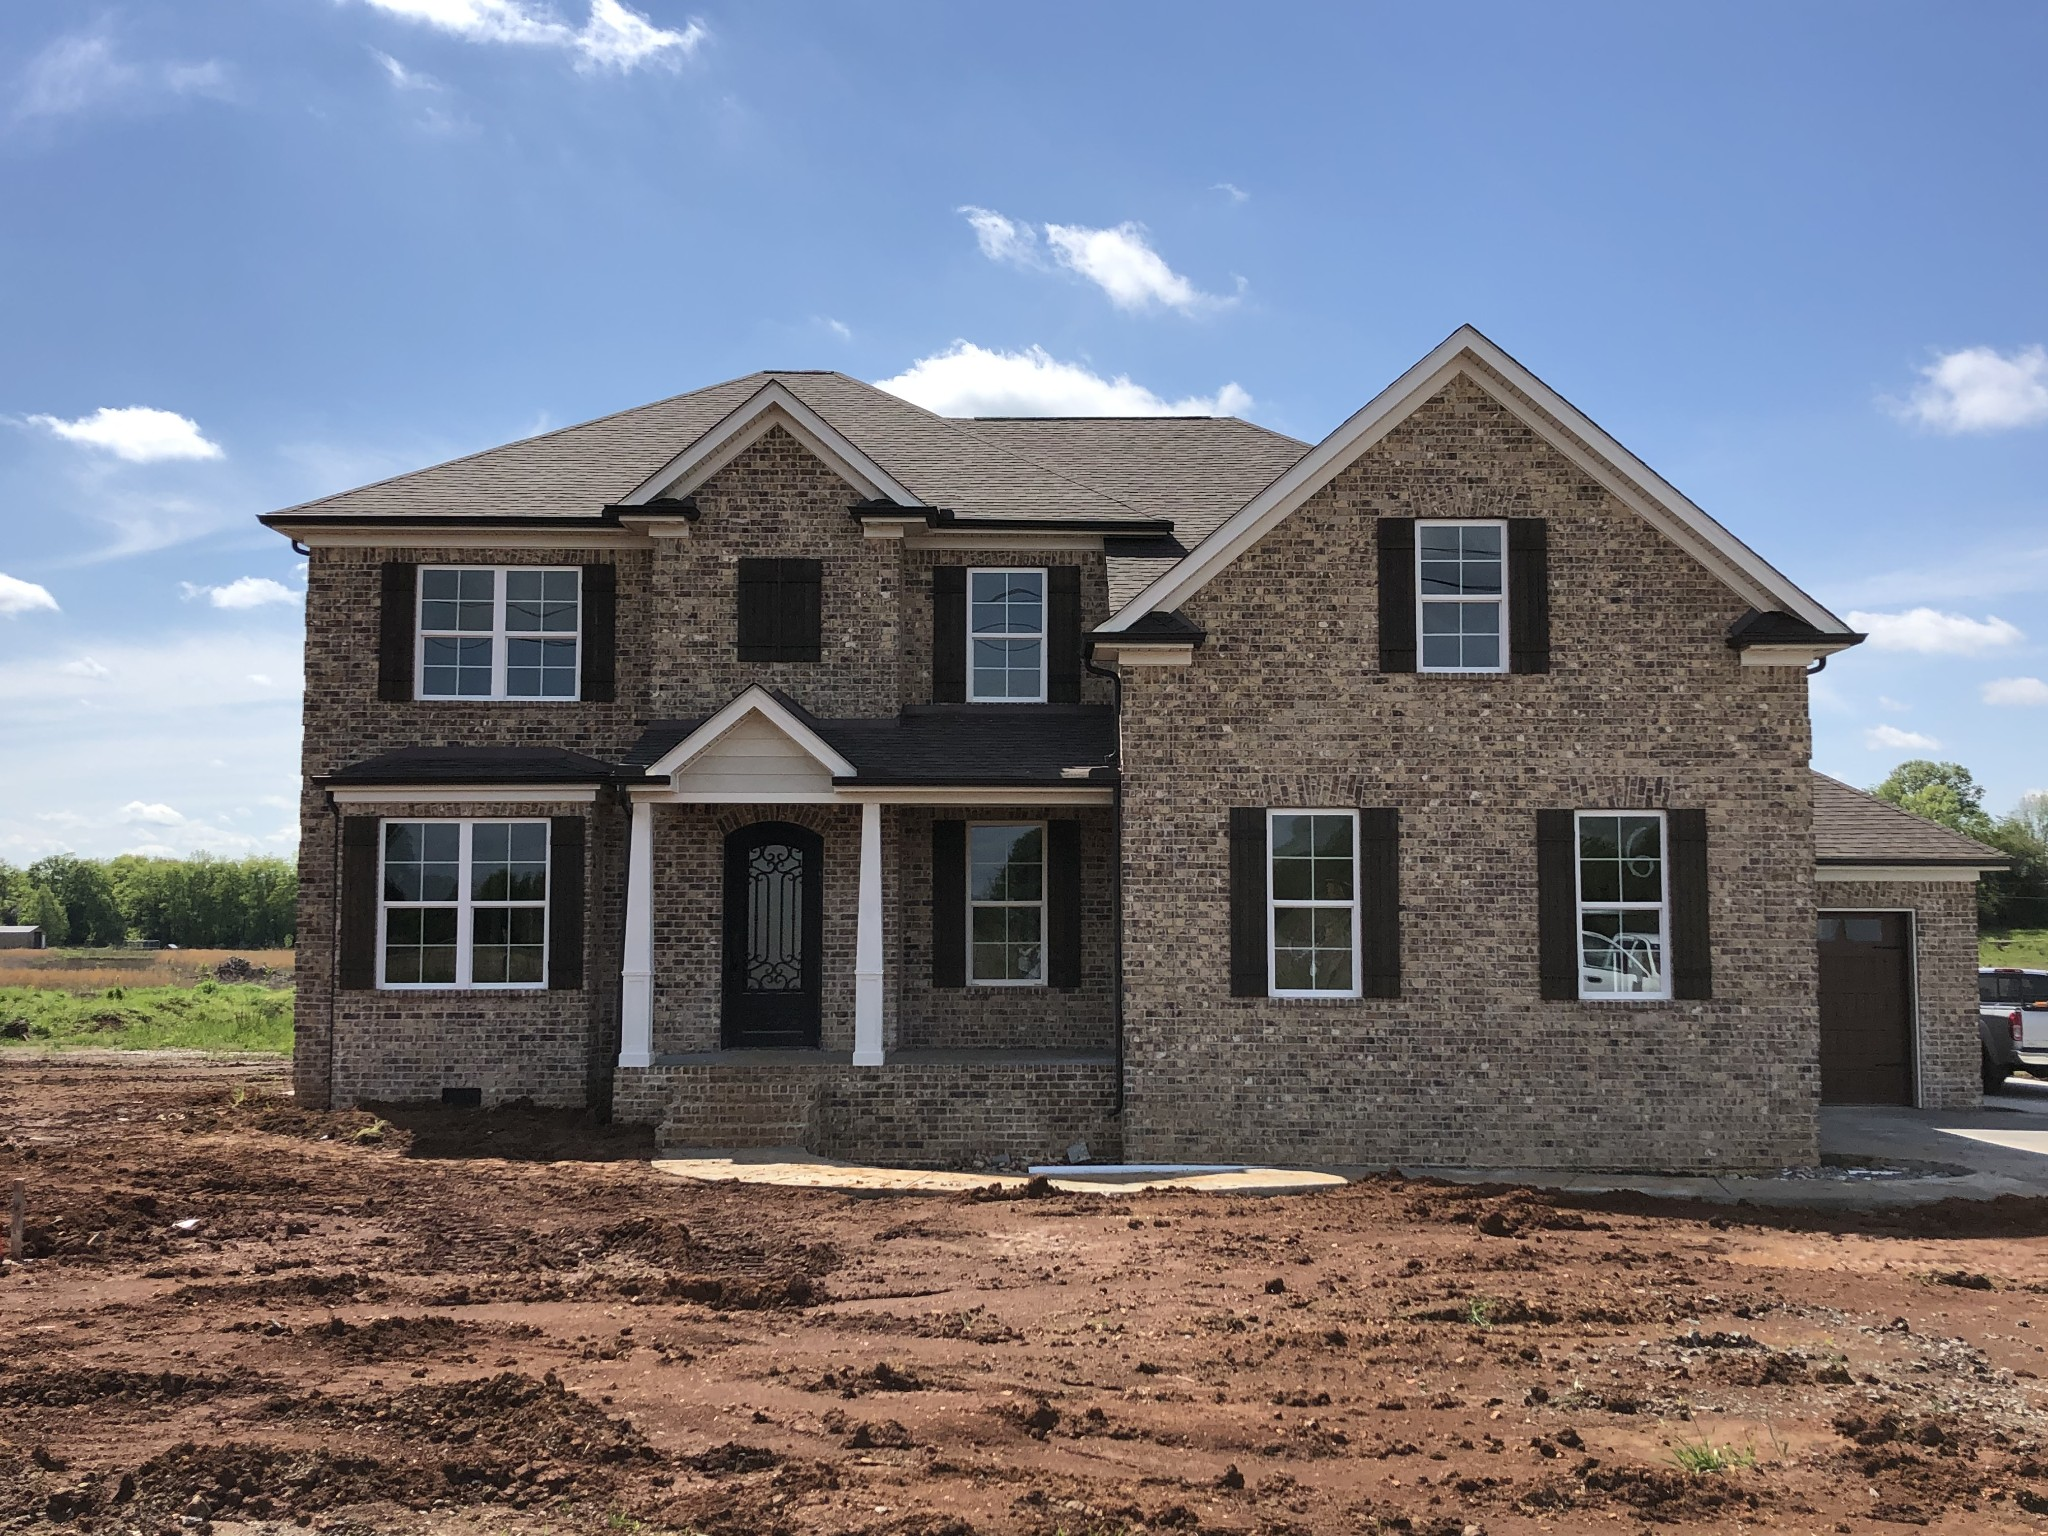 5512 Old Salem Road, Rockvale, TN 37153 - Rockvale, TN real estate listing